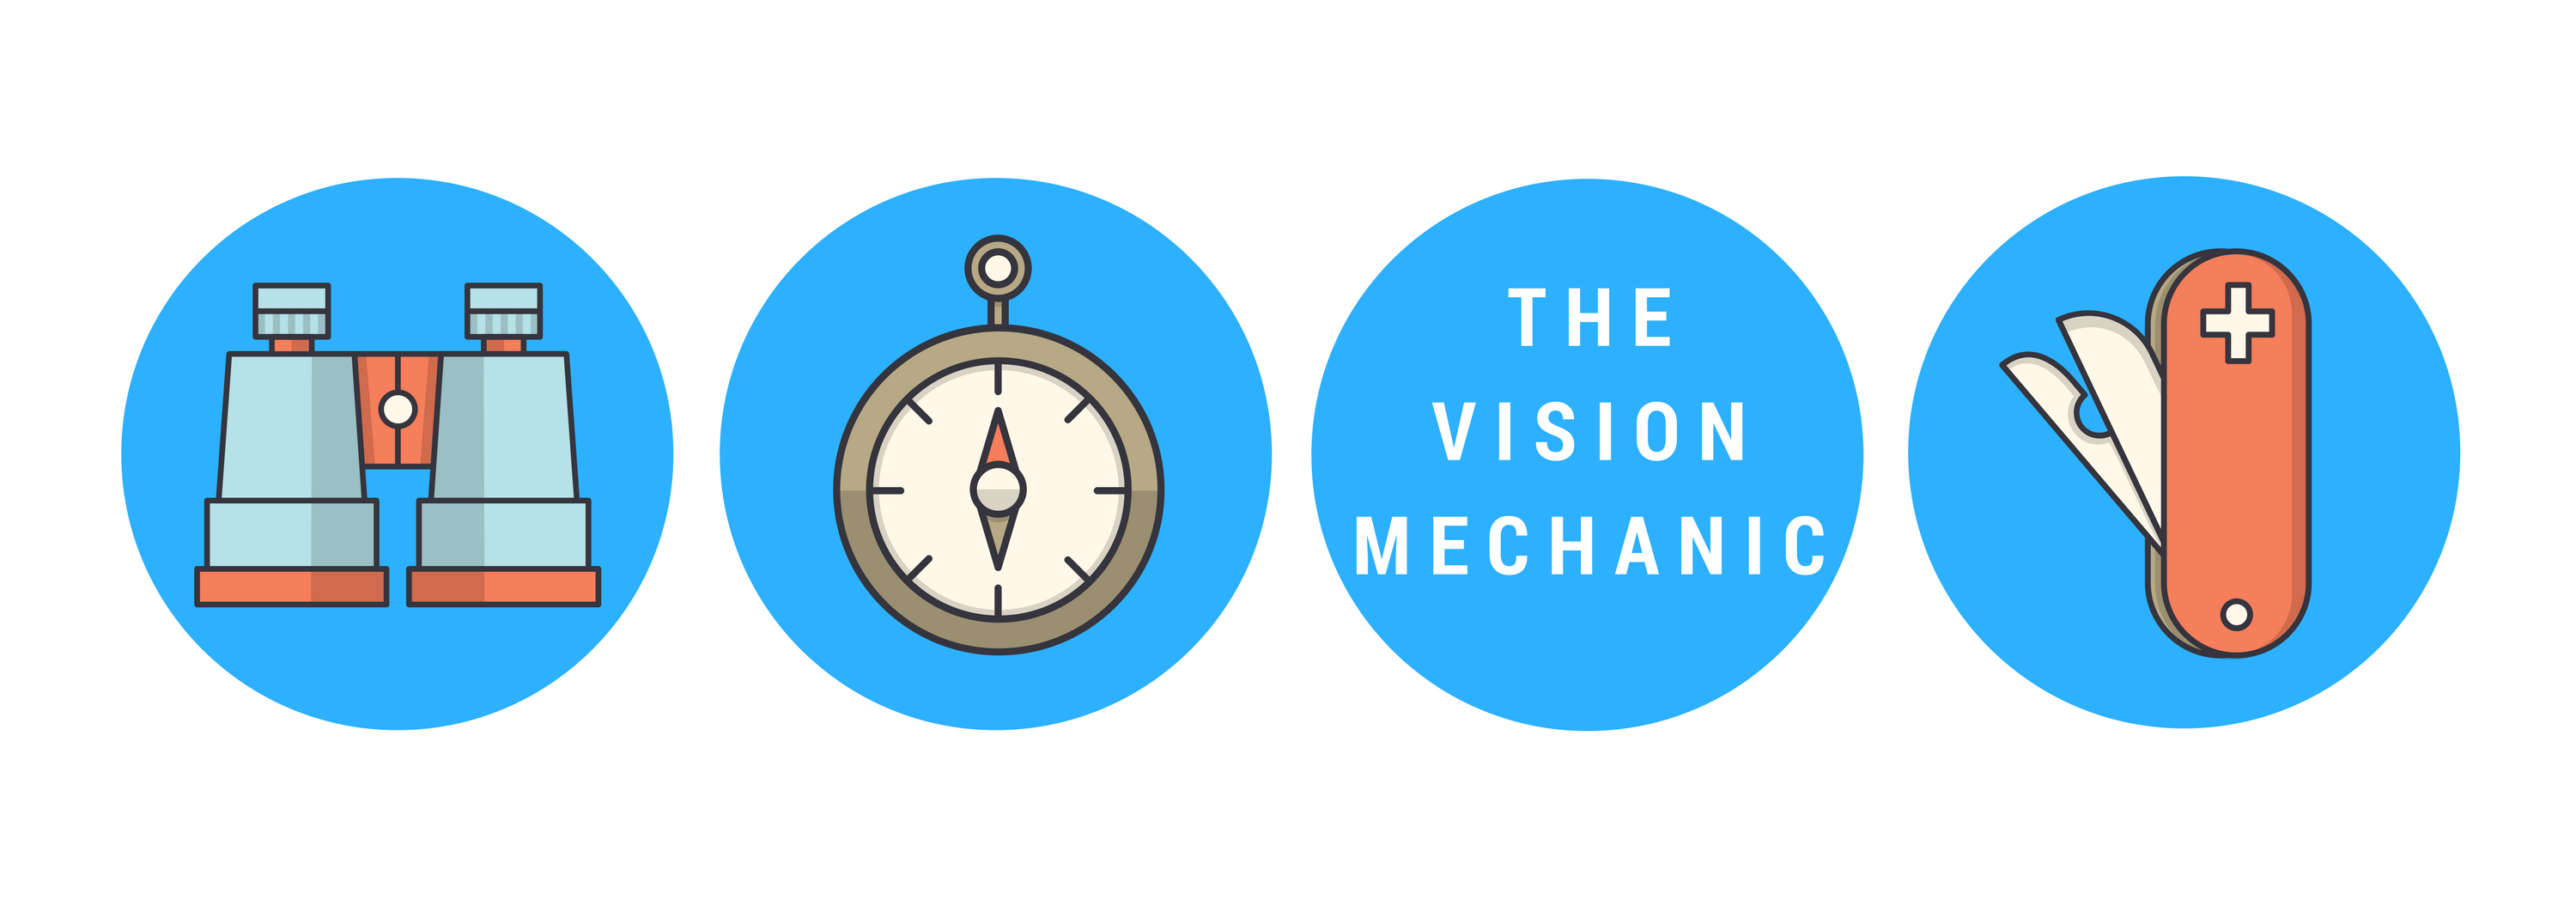 The Vision Mechanic